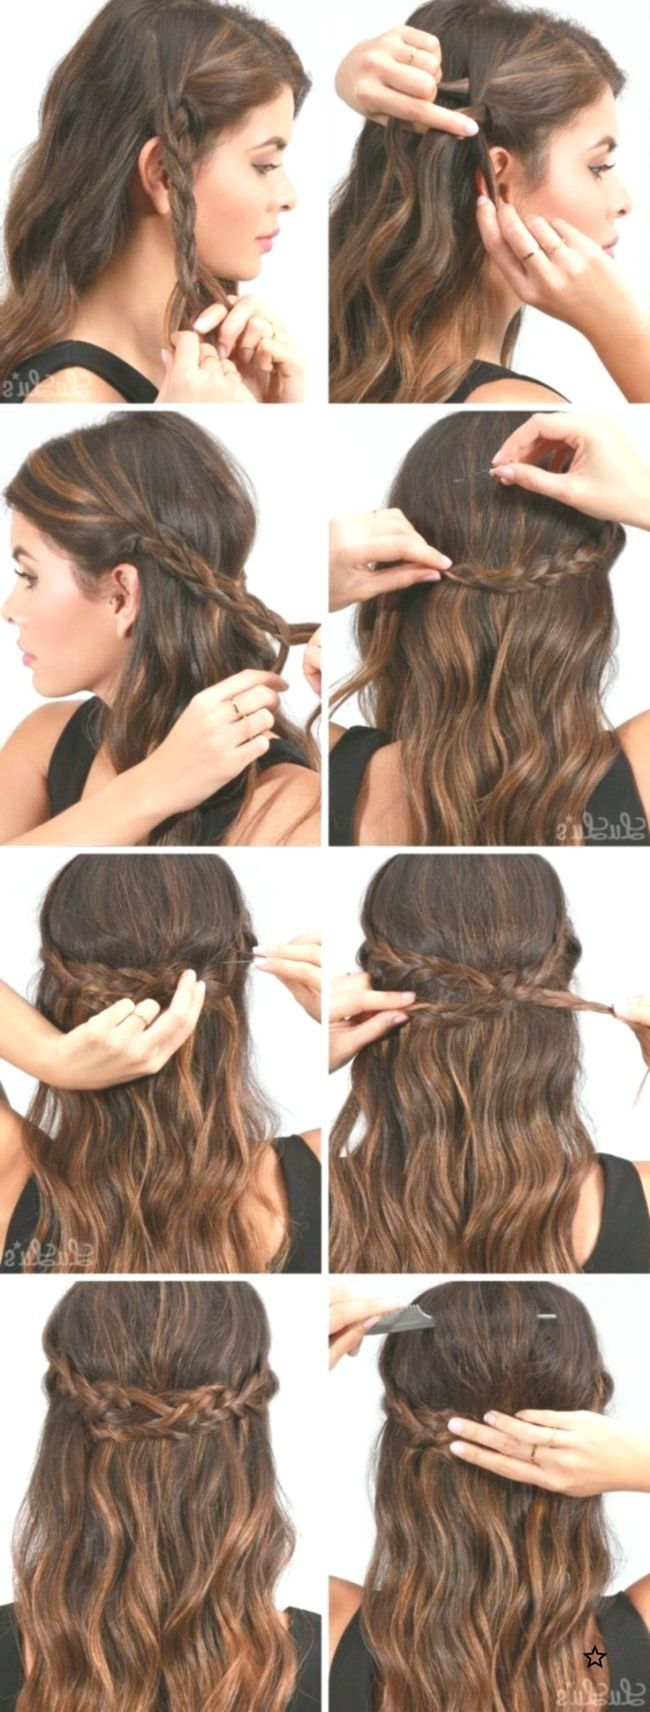 Perfect party hairstyles for long hair easy to do at home step by step 2018 #hai #Easy #hai # ...